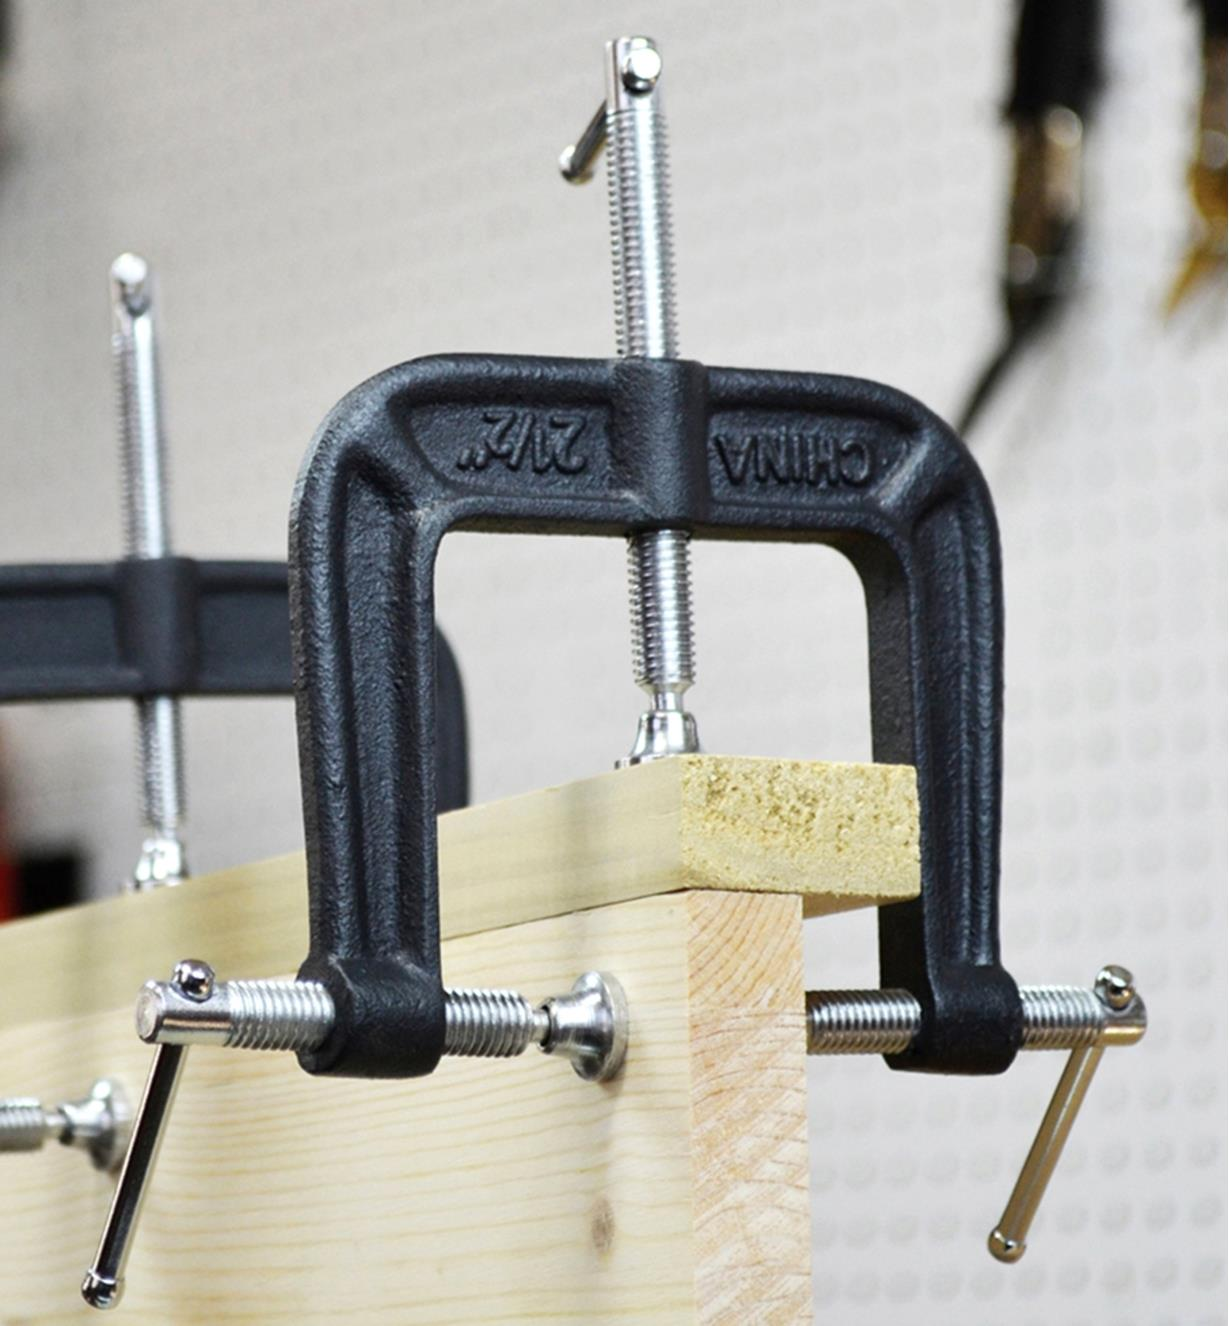 A pair of Bessey three-way edge clamps being used to hold two pieces of wood together perpendicular to each other